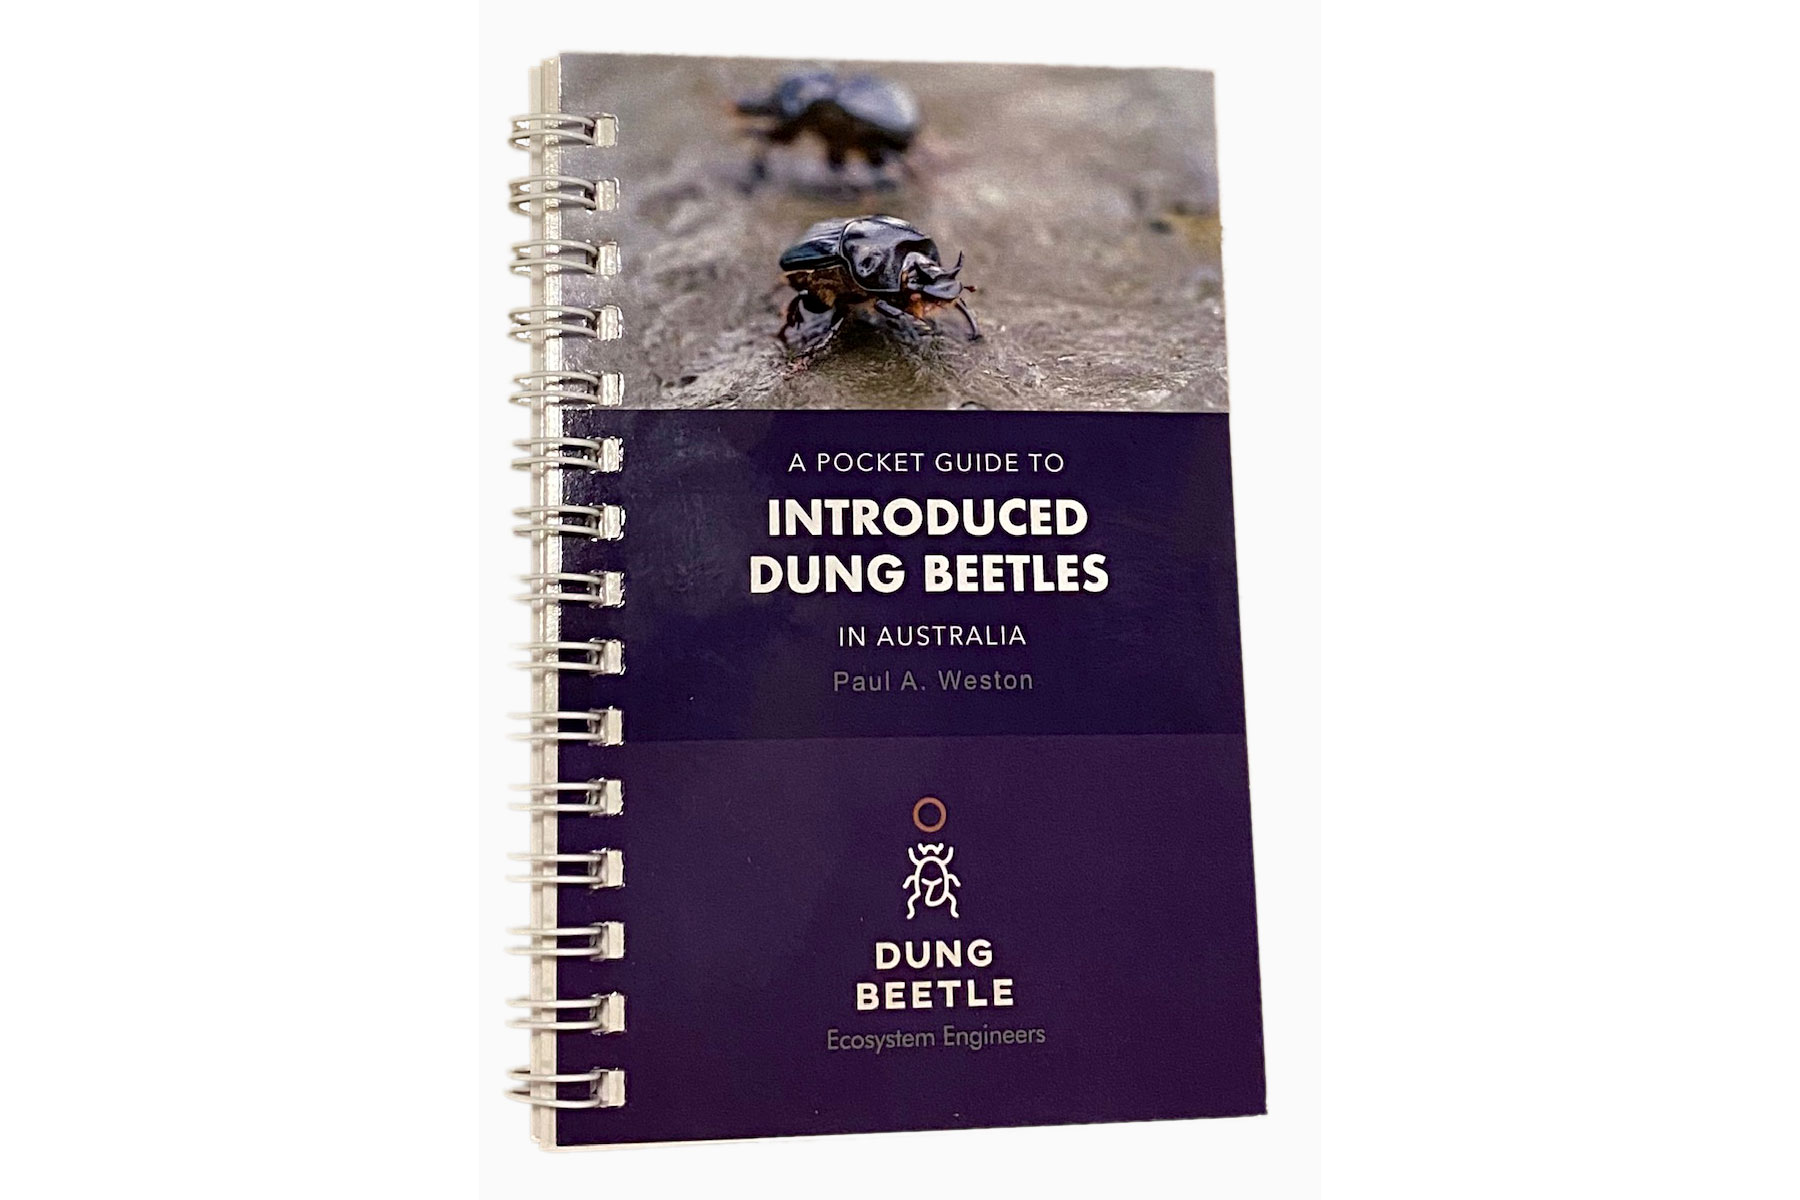 Dung Beetle pocket guide